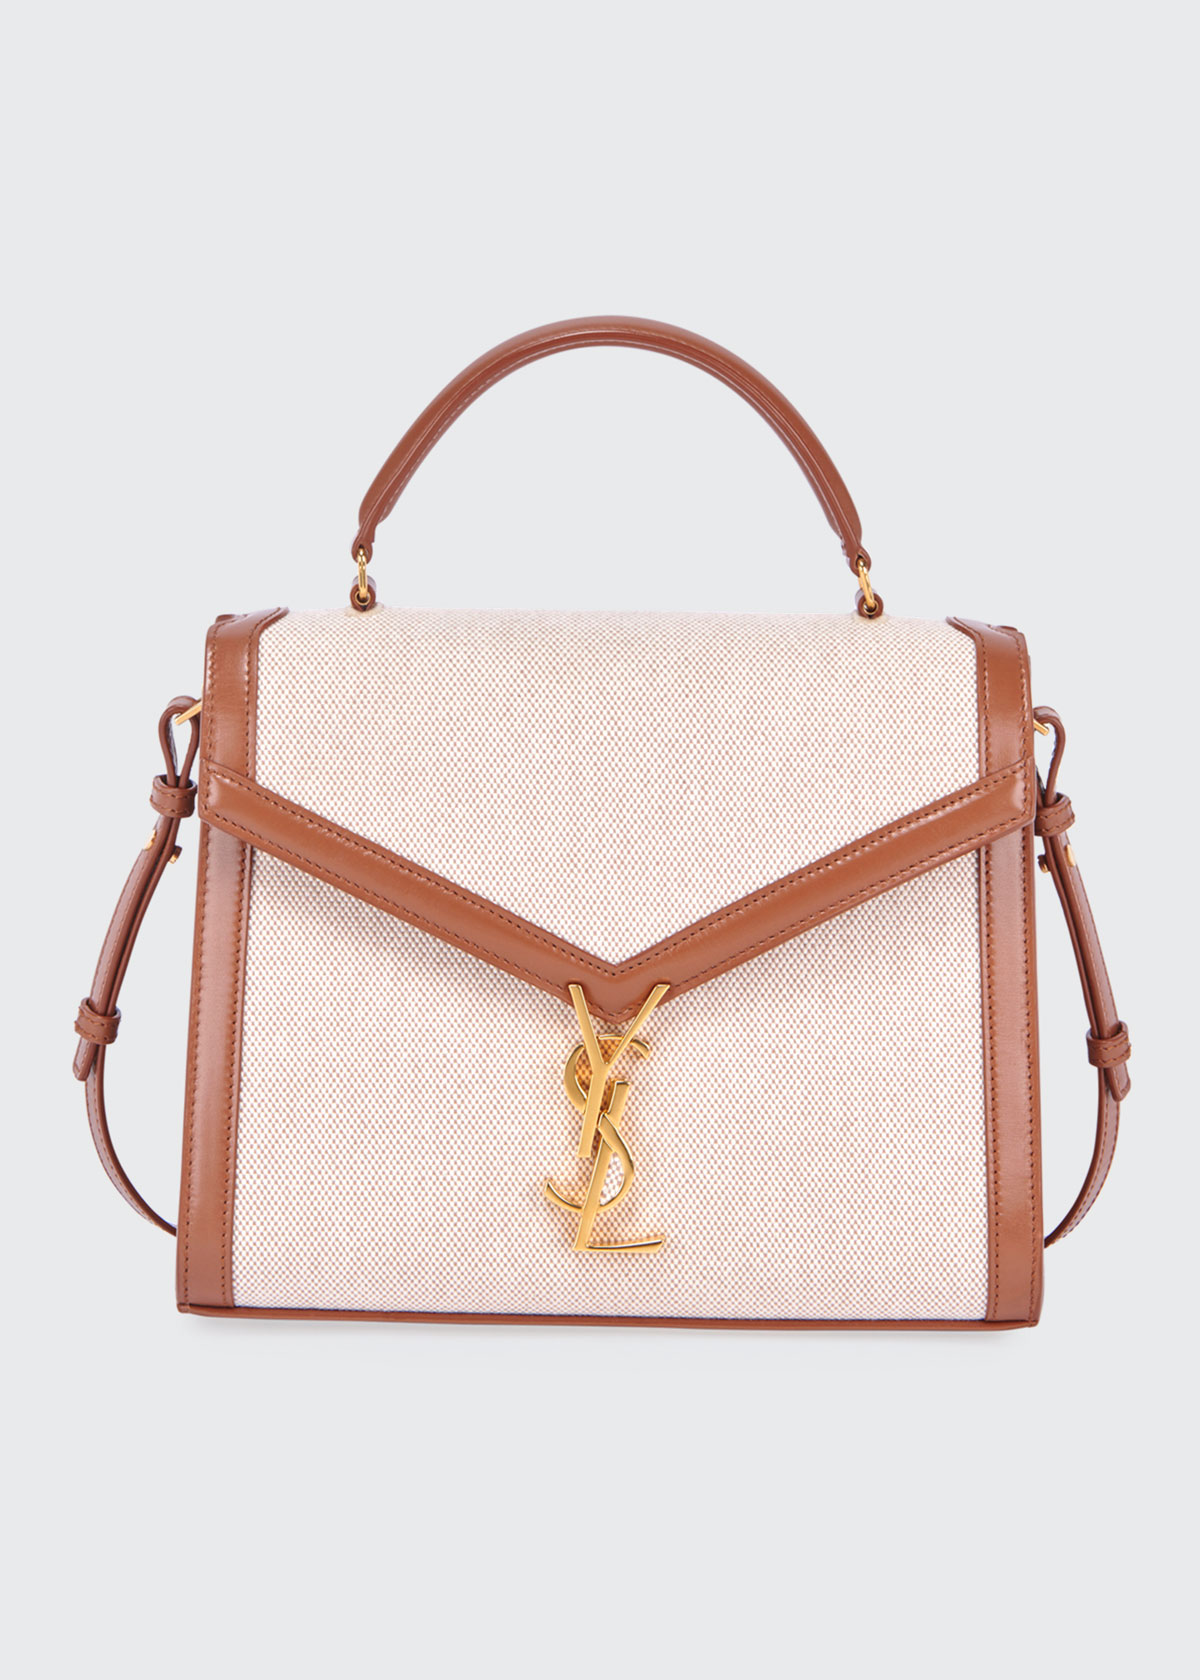 Saint Laurent Tops CASSANDRE YSL MONOGRAM CANVAS TOP-HANDLE BAG - GOLDEN HARDWARE